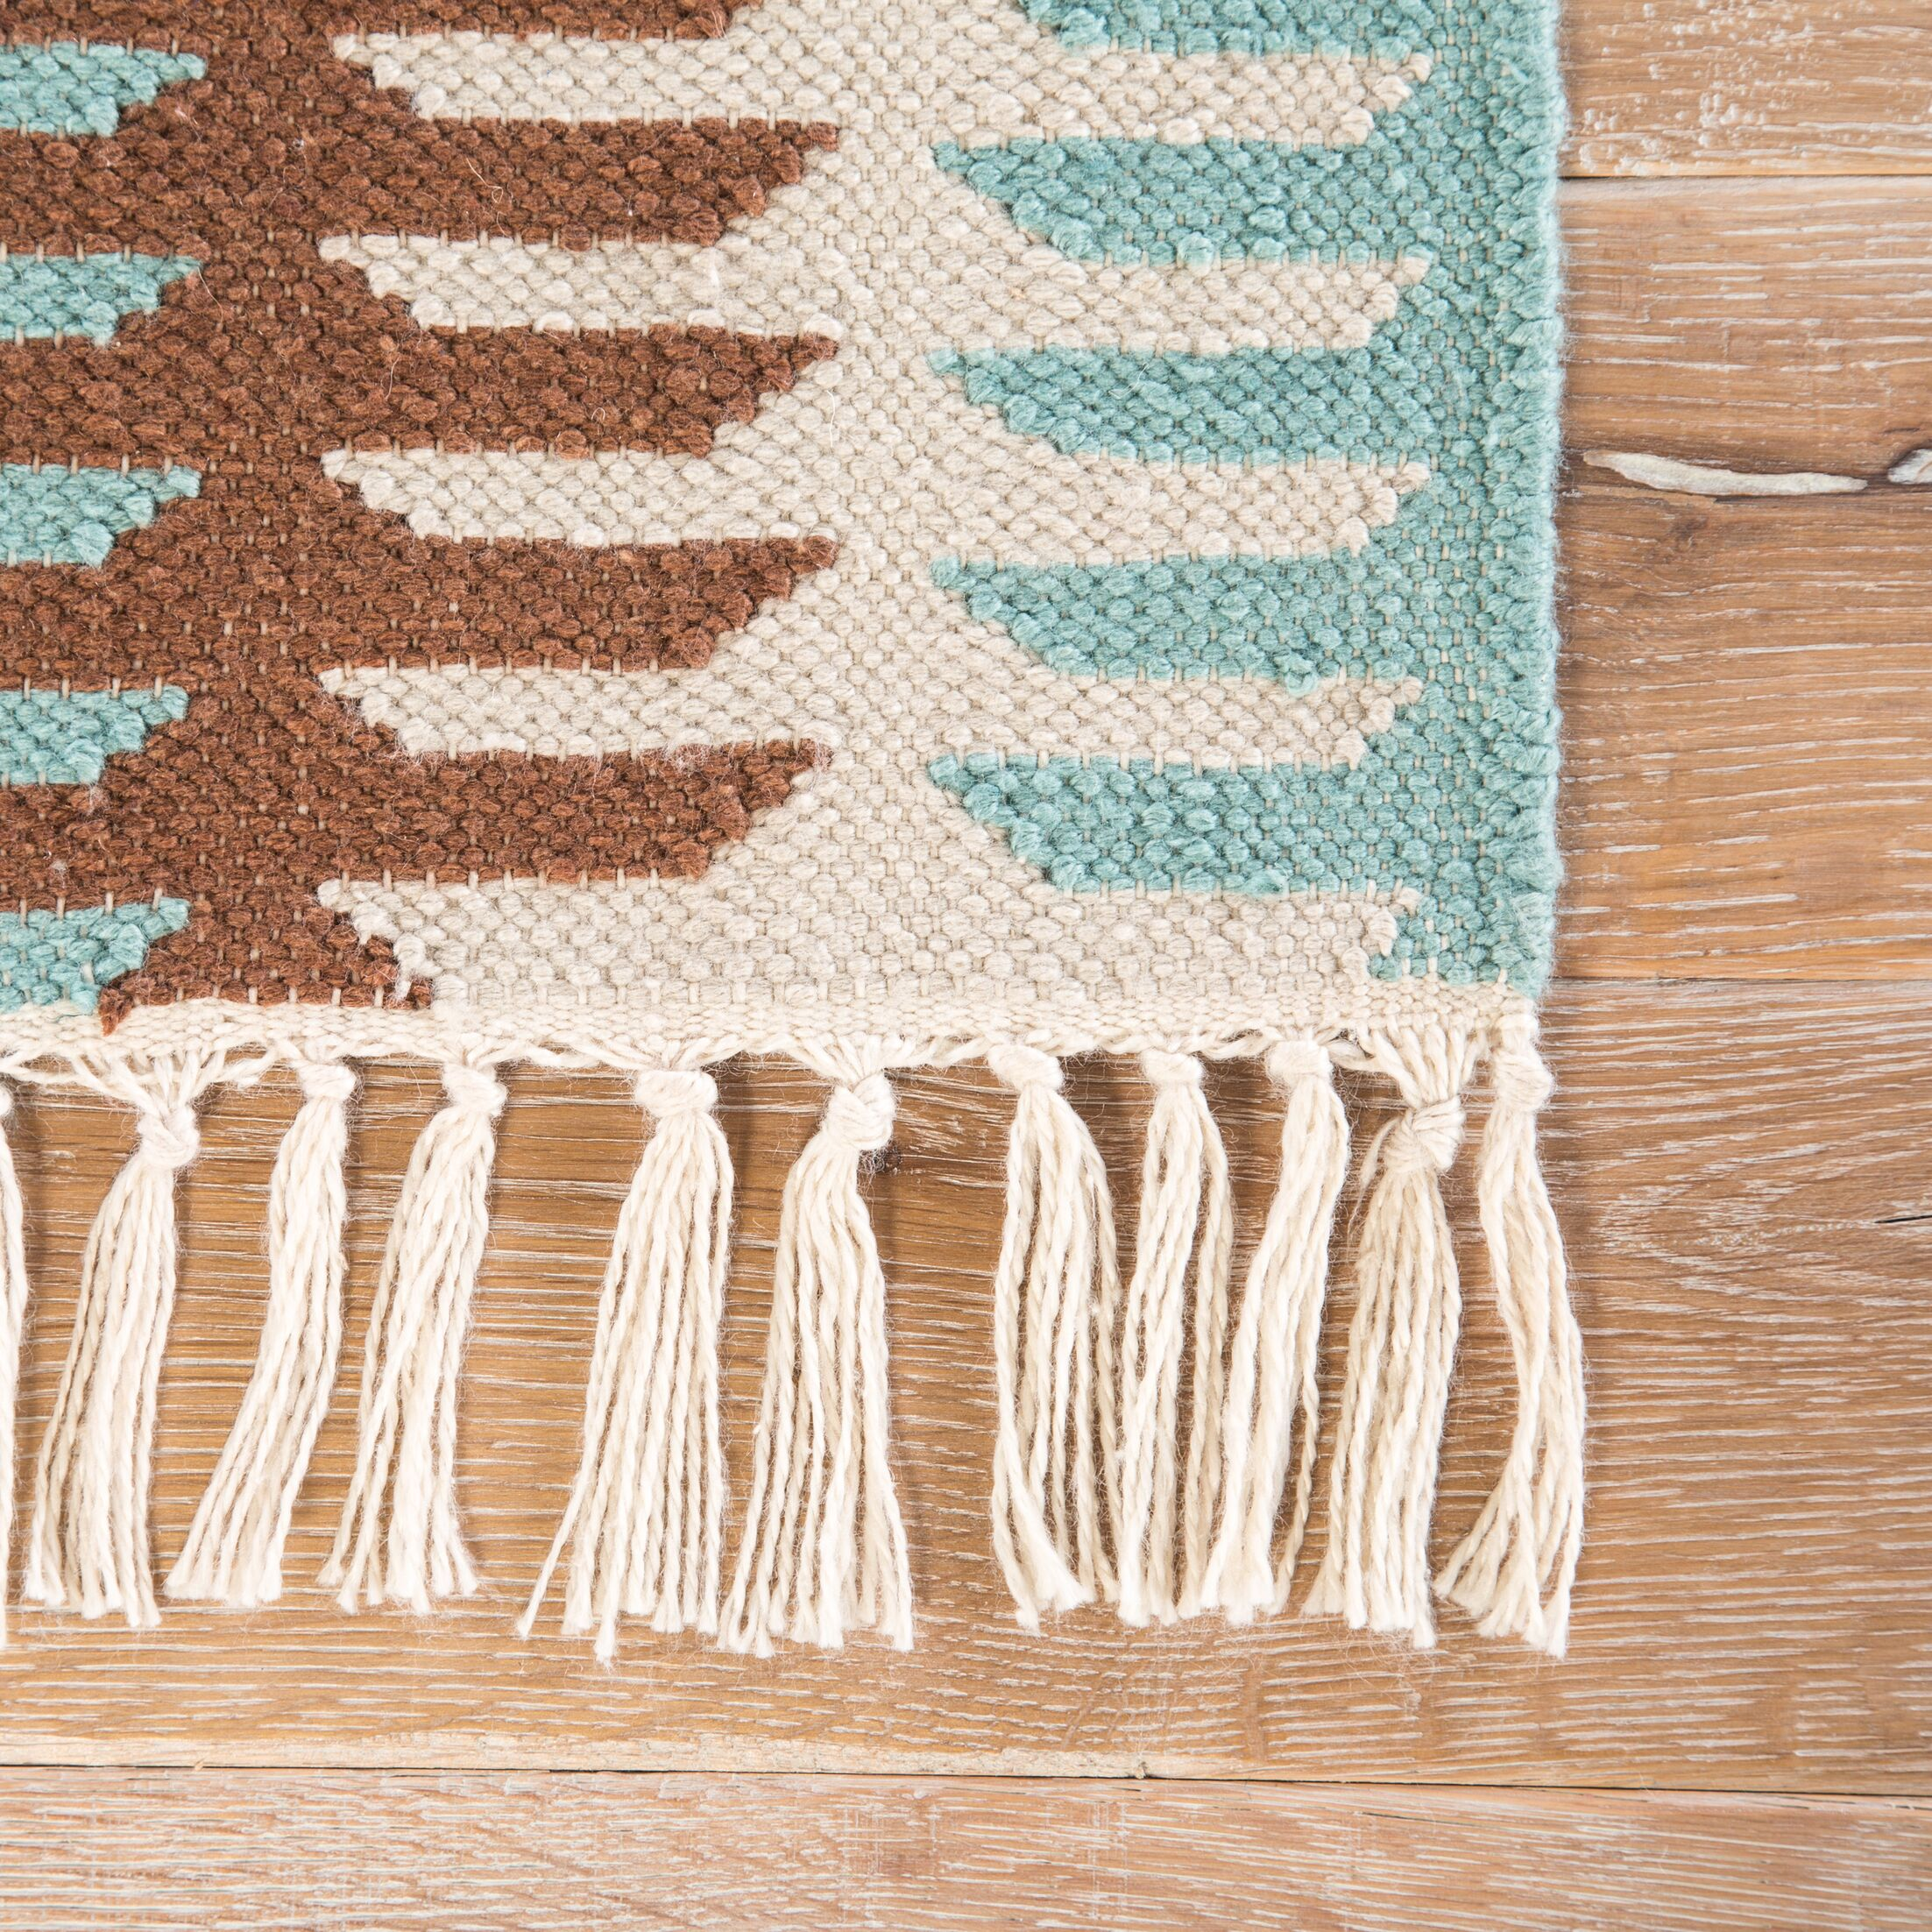 Afton Hand Woven Beige/Teal Area Rug Rug Size: Rectangle 8' x 10'